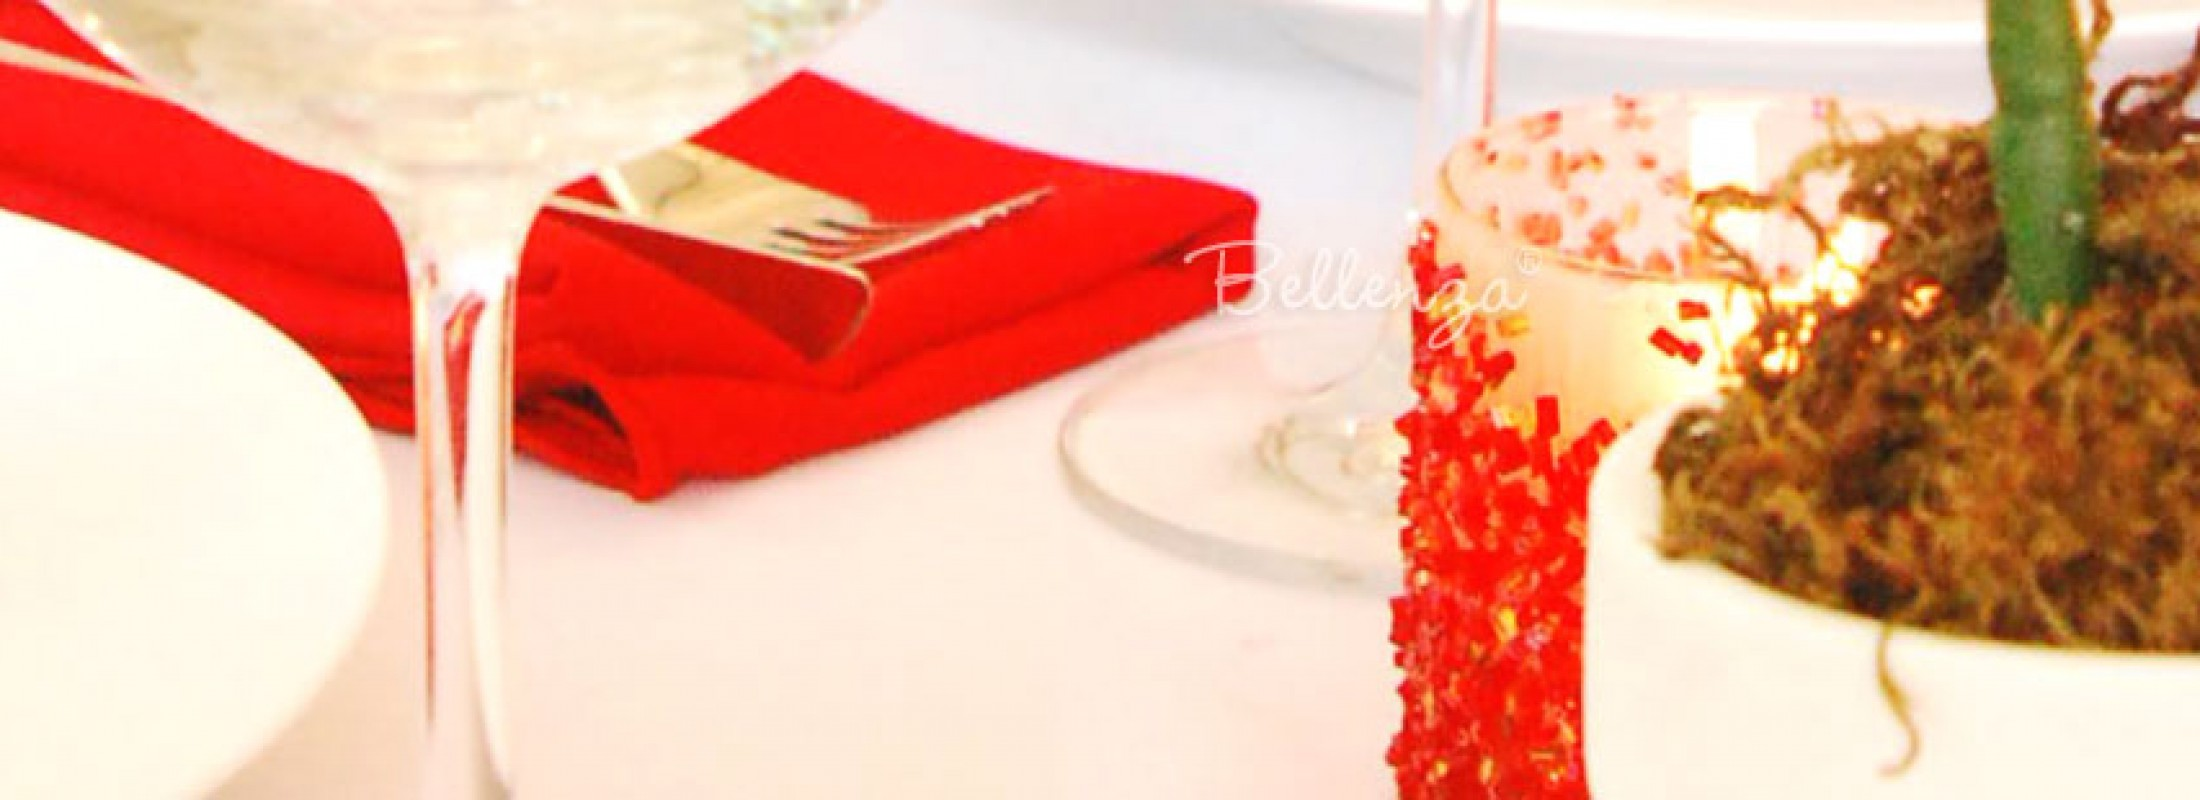 Easy Holiday Party DIY: Glitter and Beads Table Number and Centerpiece